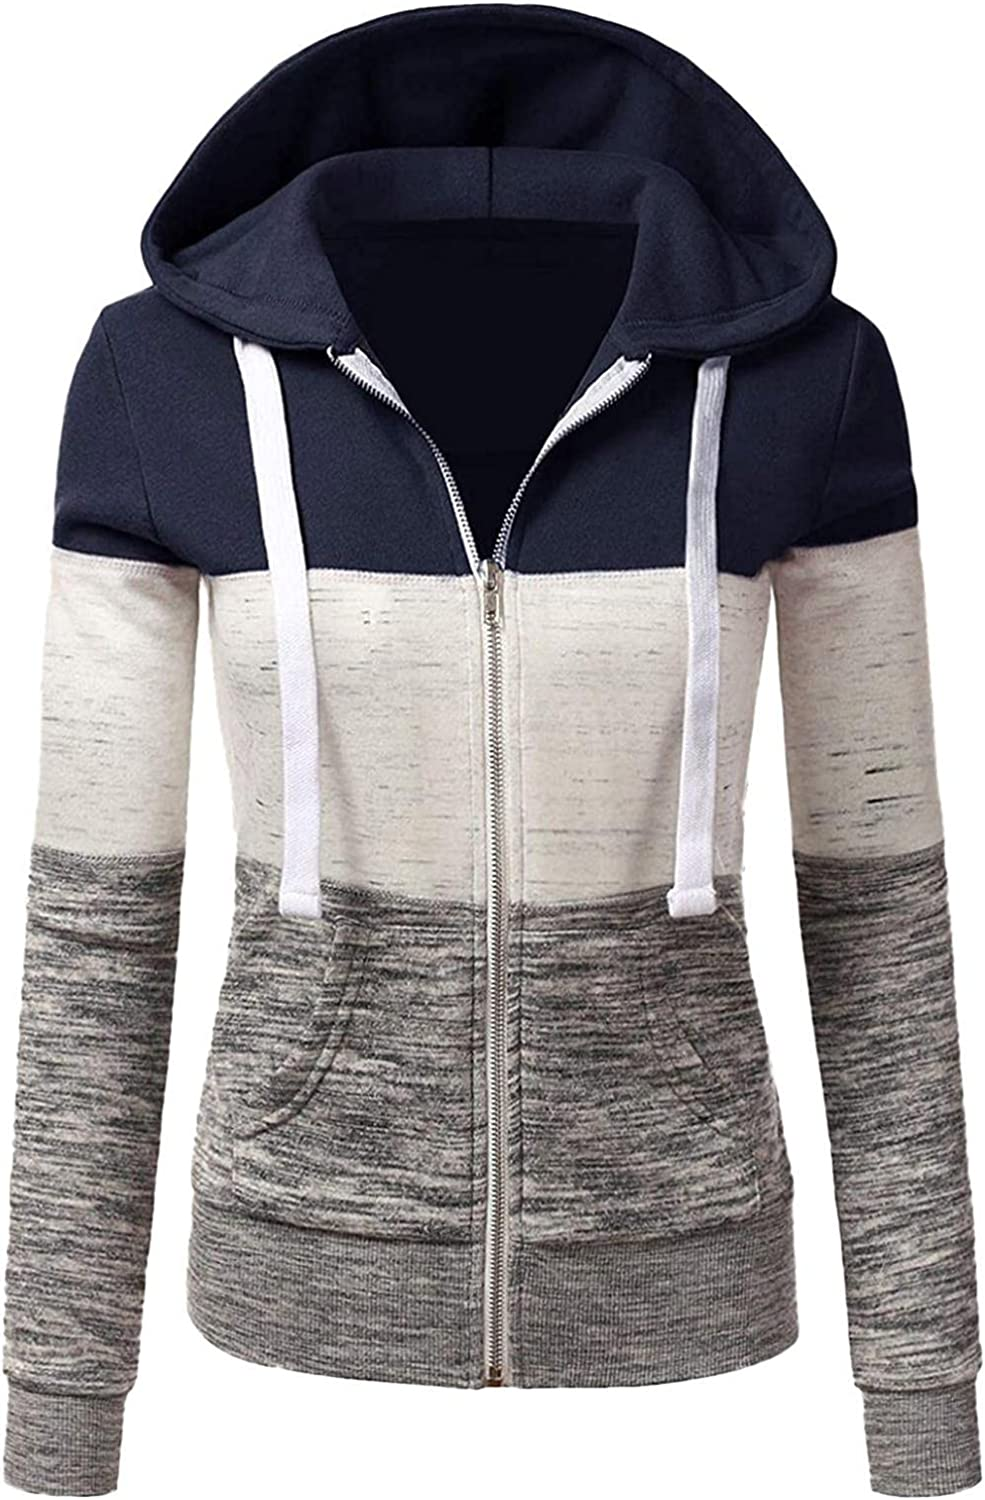 COMVALUE Womens Hoodies,Women's Zip Up Long Sleeve Fall Sweatshirts Casual Drawstring Jacket with with Pocket